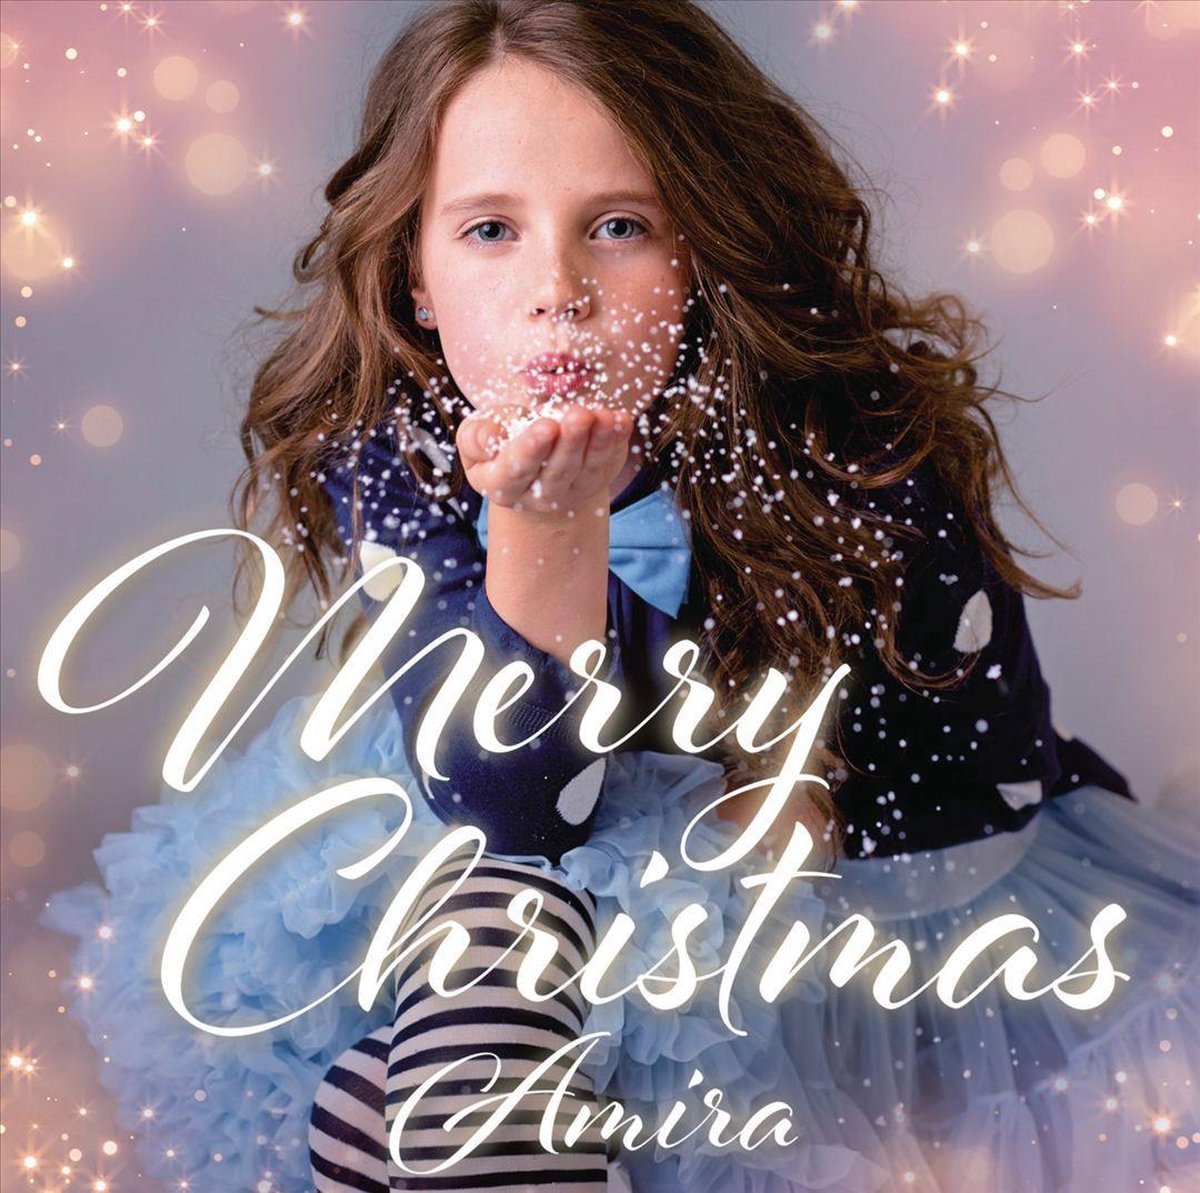 Merry Christmas - Amira Willighagen